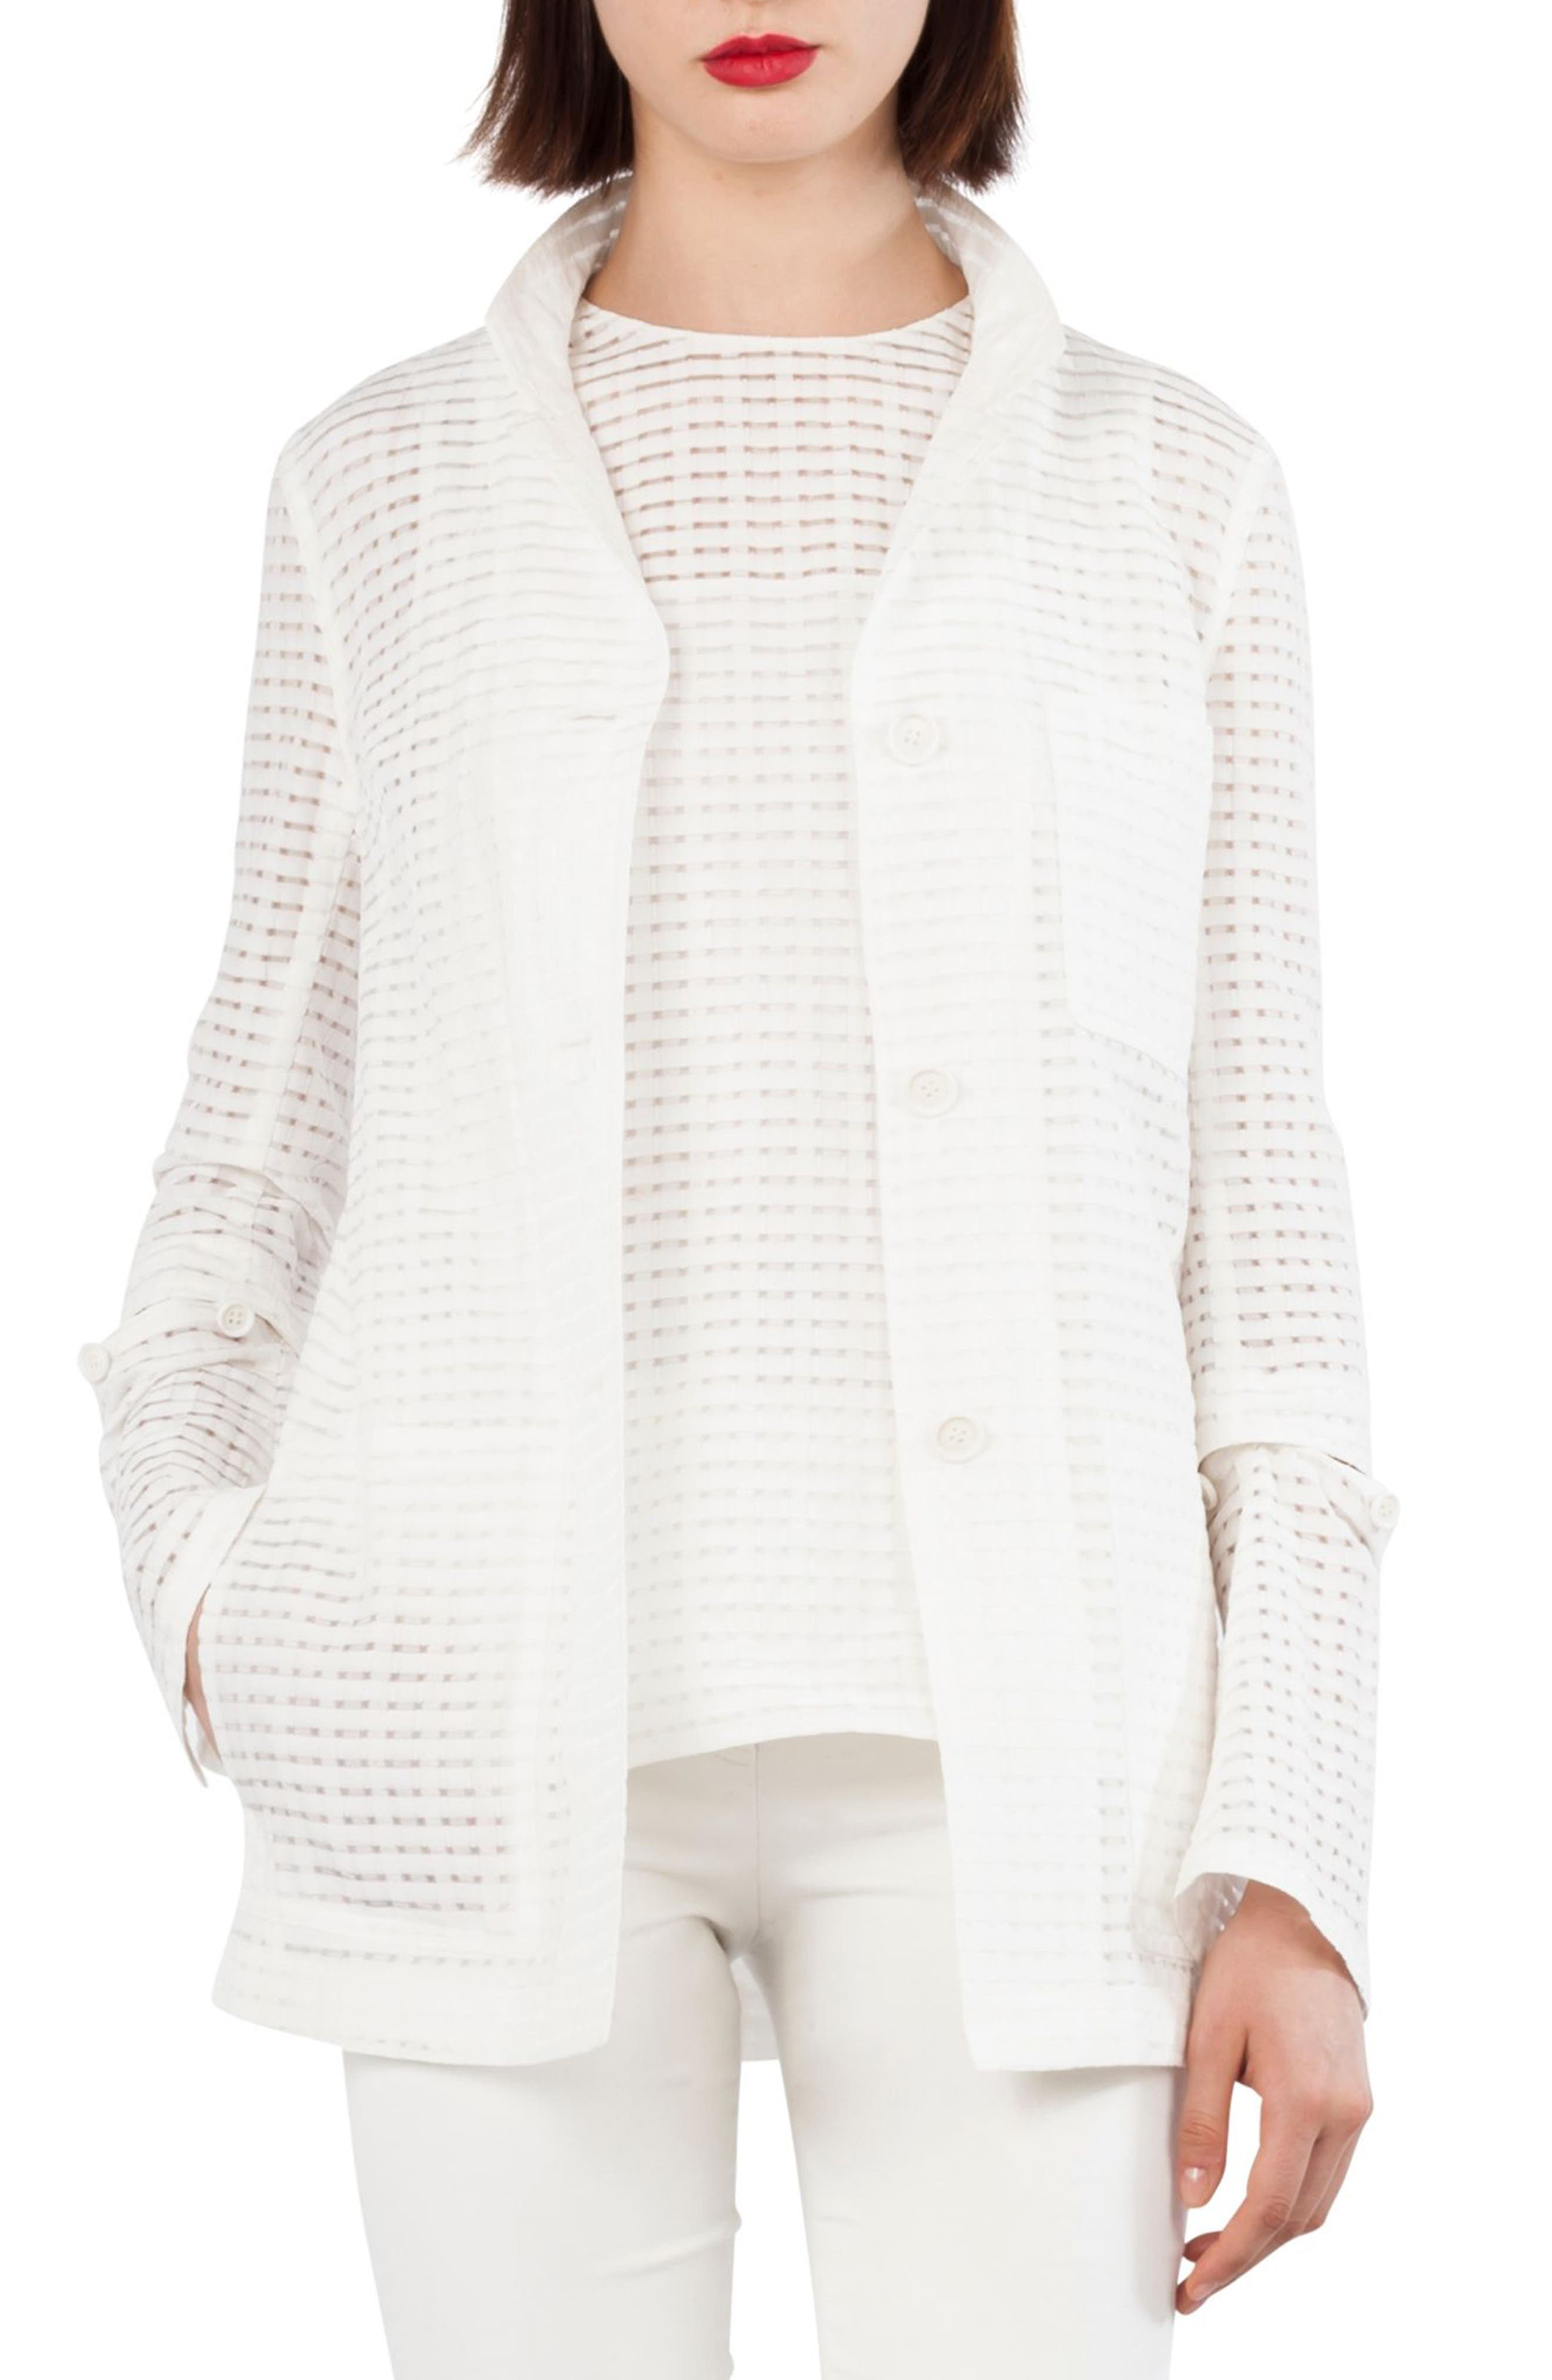 Openweave Silk & Cotton Blend Jacket with Detachable Cuffs,                             Main thumbnail 1, color,                             Paper